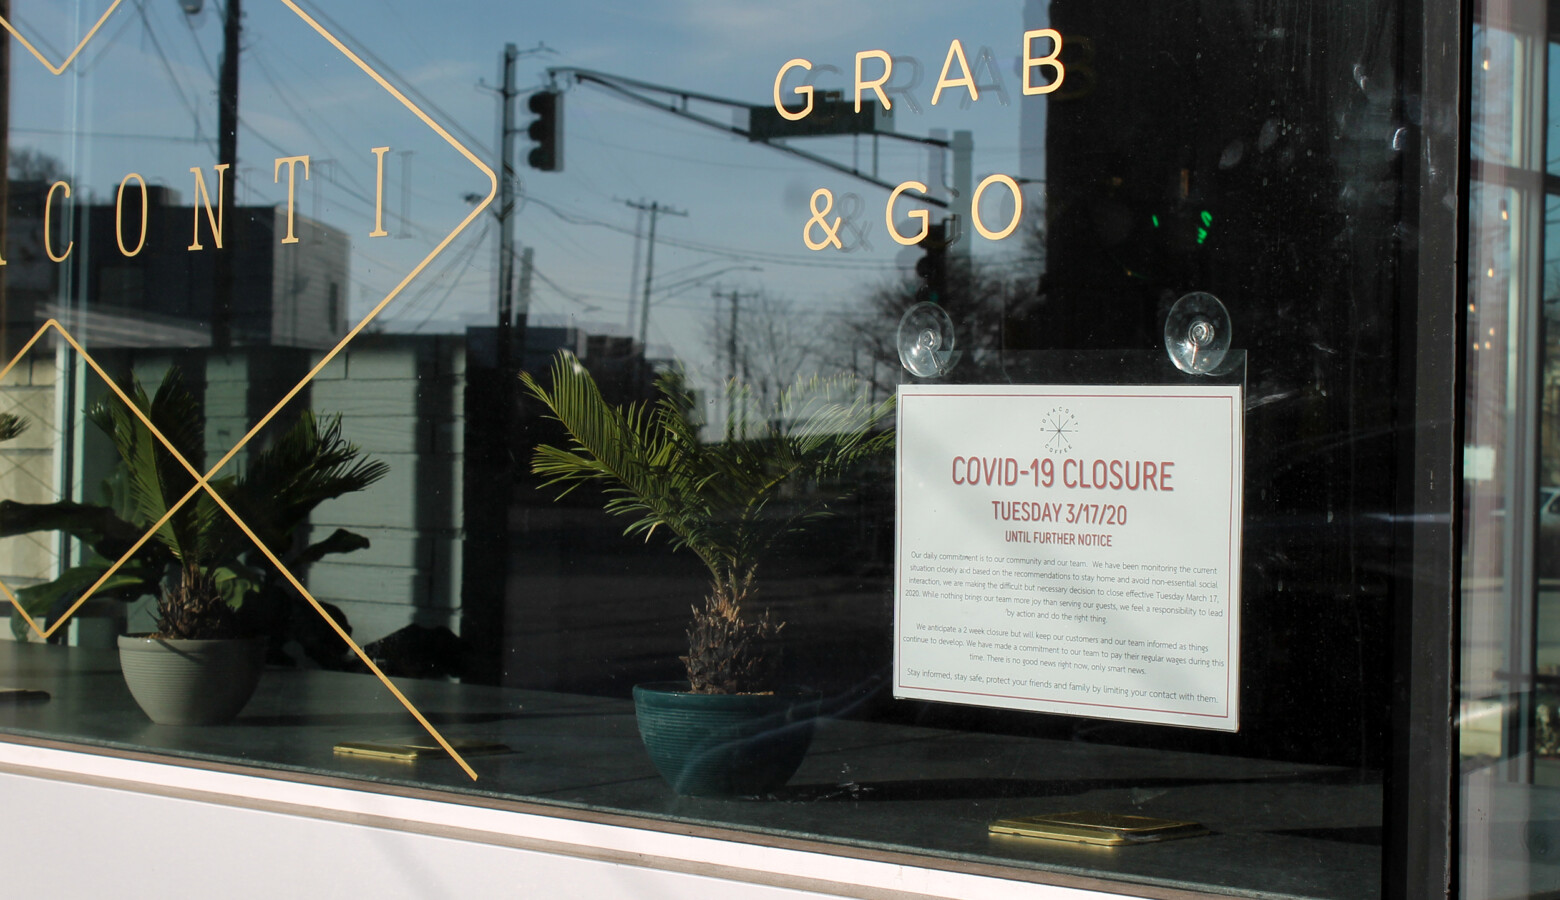 Small businesses with fewer than 50 people, that generate less than $5 million in revenue, are eligible for grants depending on how much revenue has been lost due to COVID-19. (Lauren Chapman/IPB News)